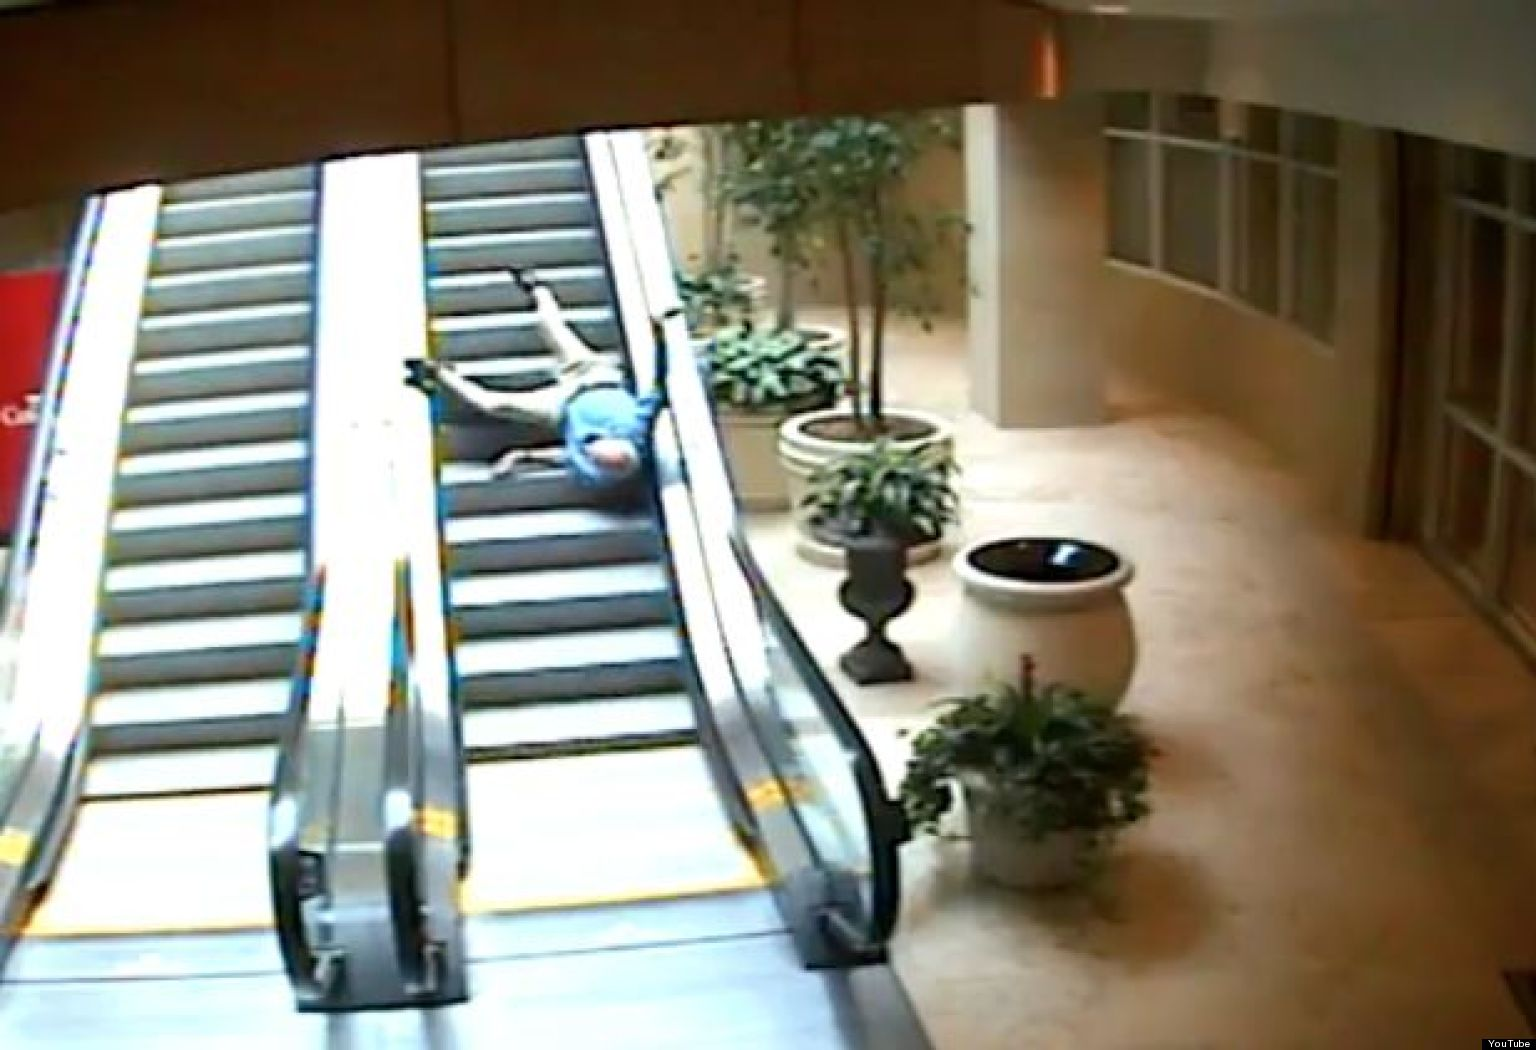 how to fall down stairs on purpose